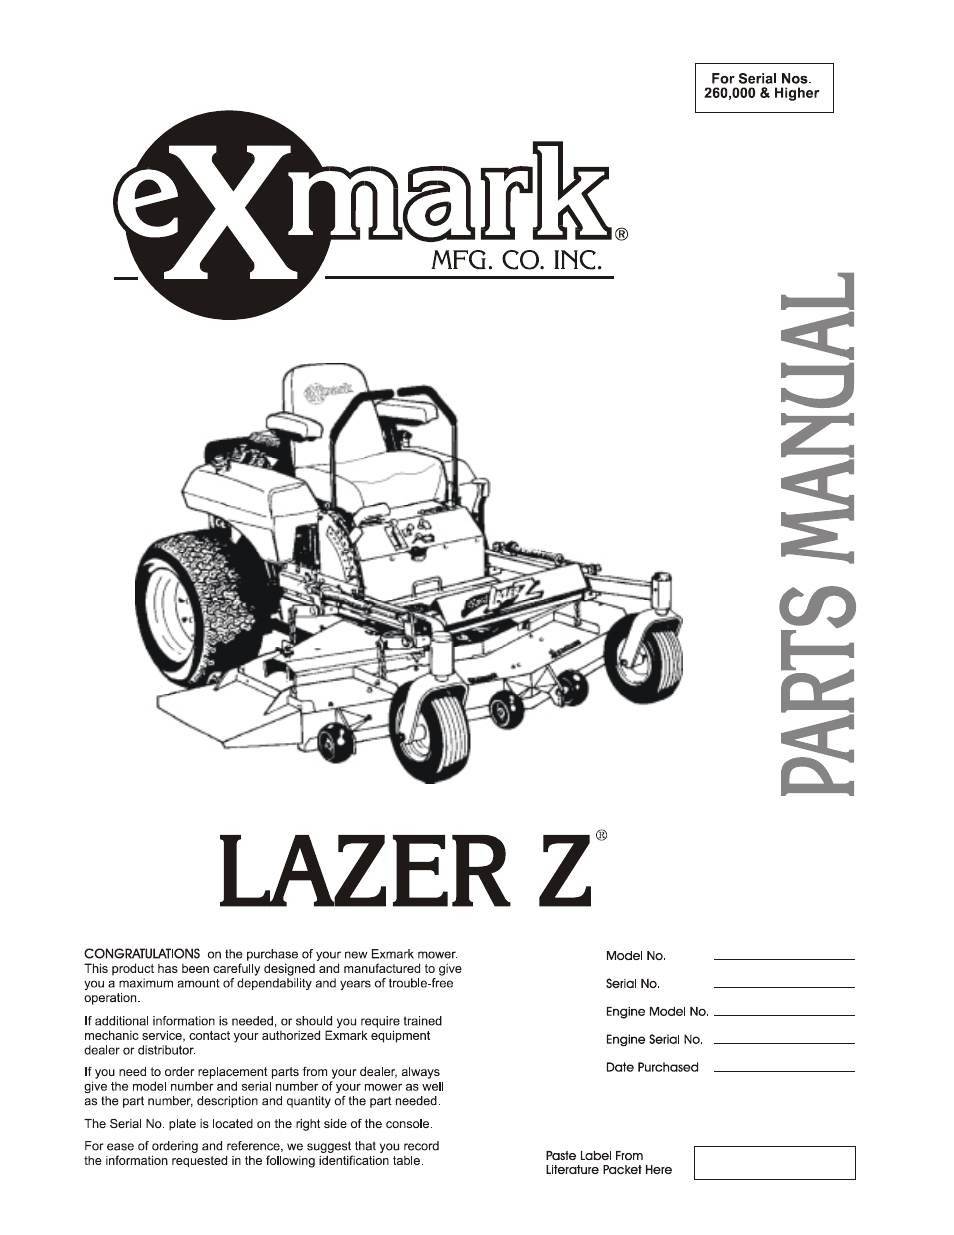 Wiring Diagram Exmark Lazer Z : Exmark lazer z belt diagram imageresizertool